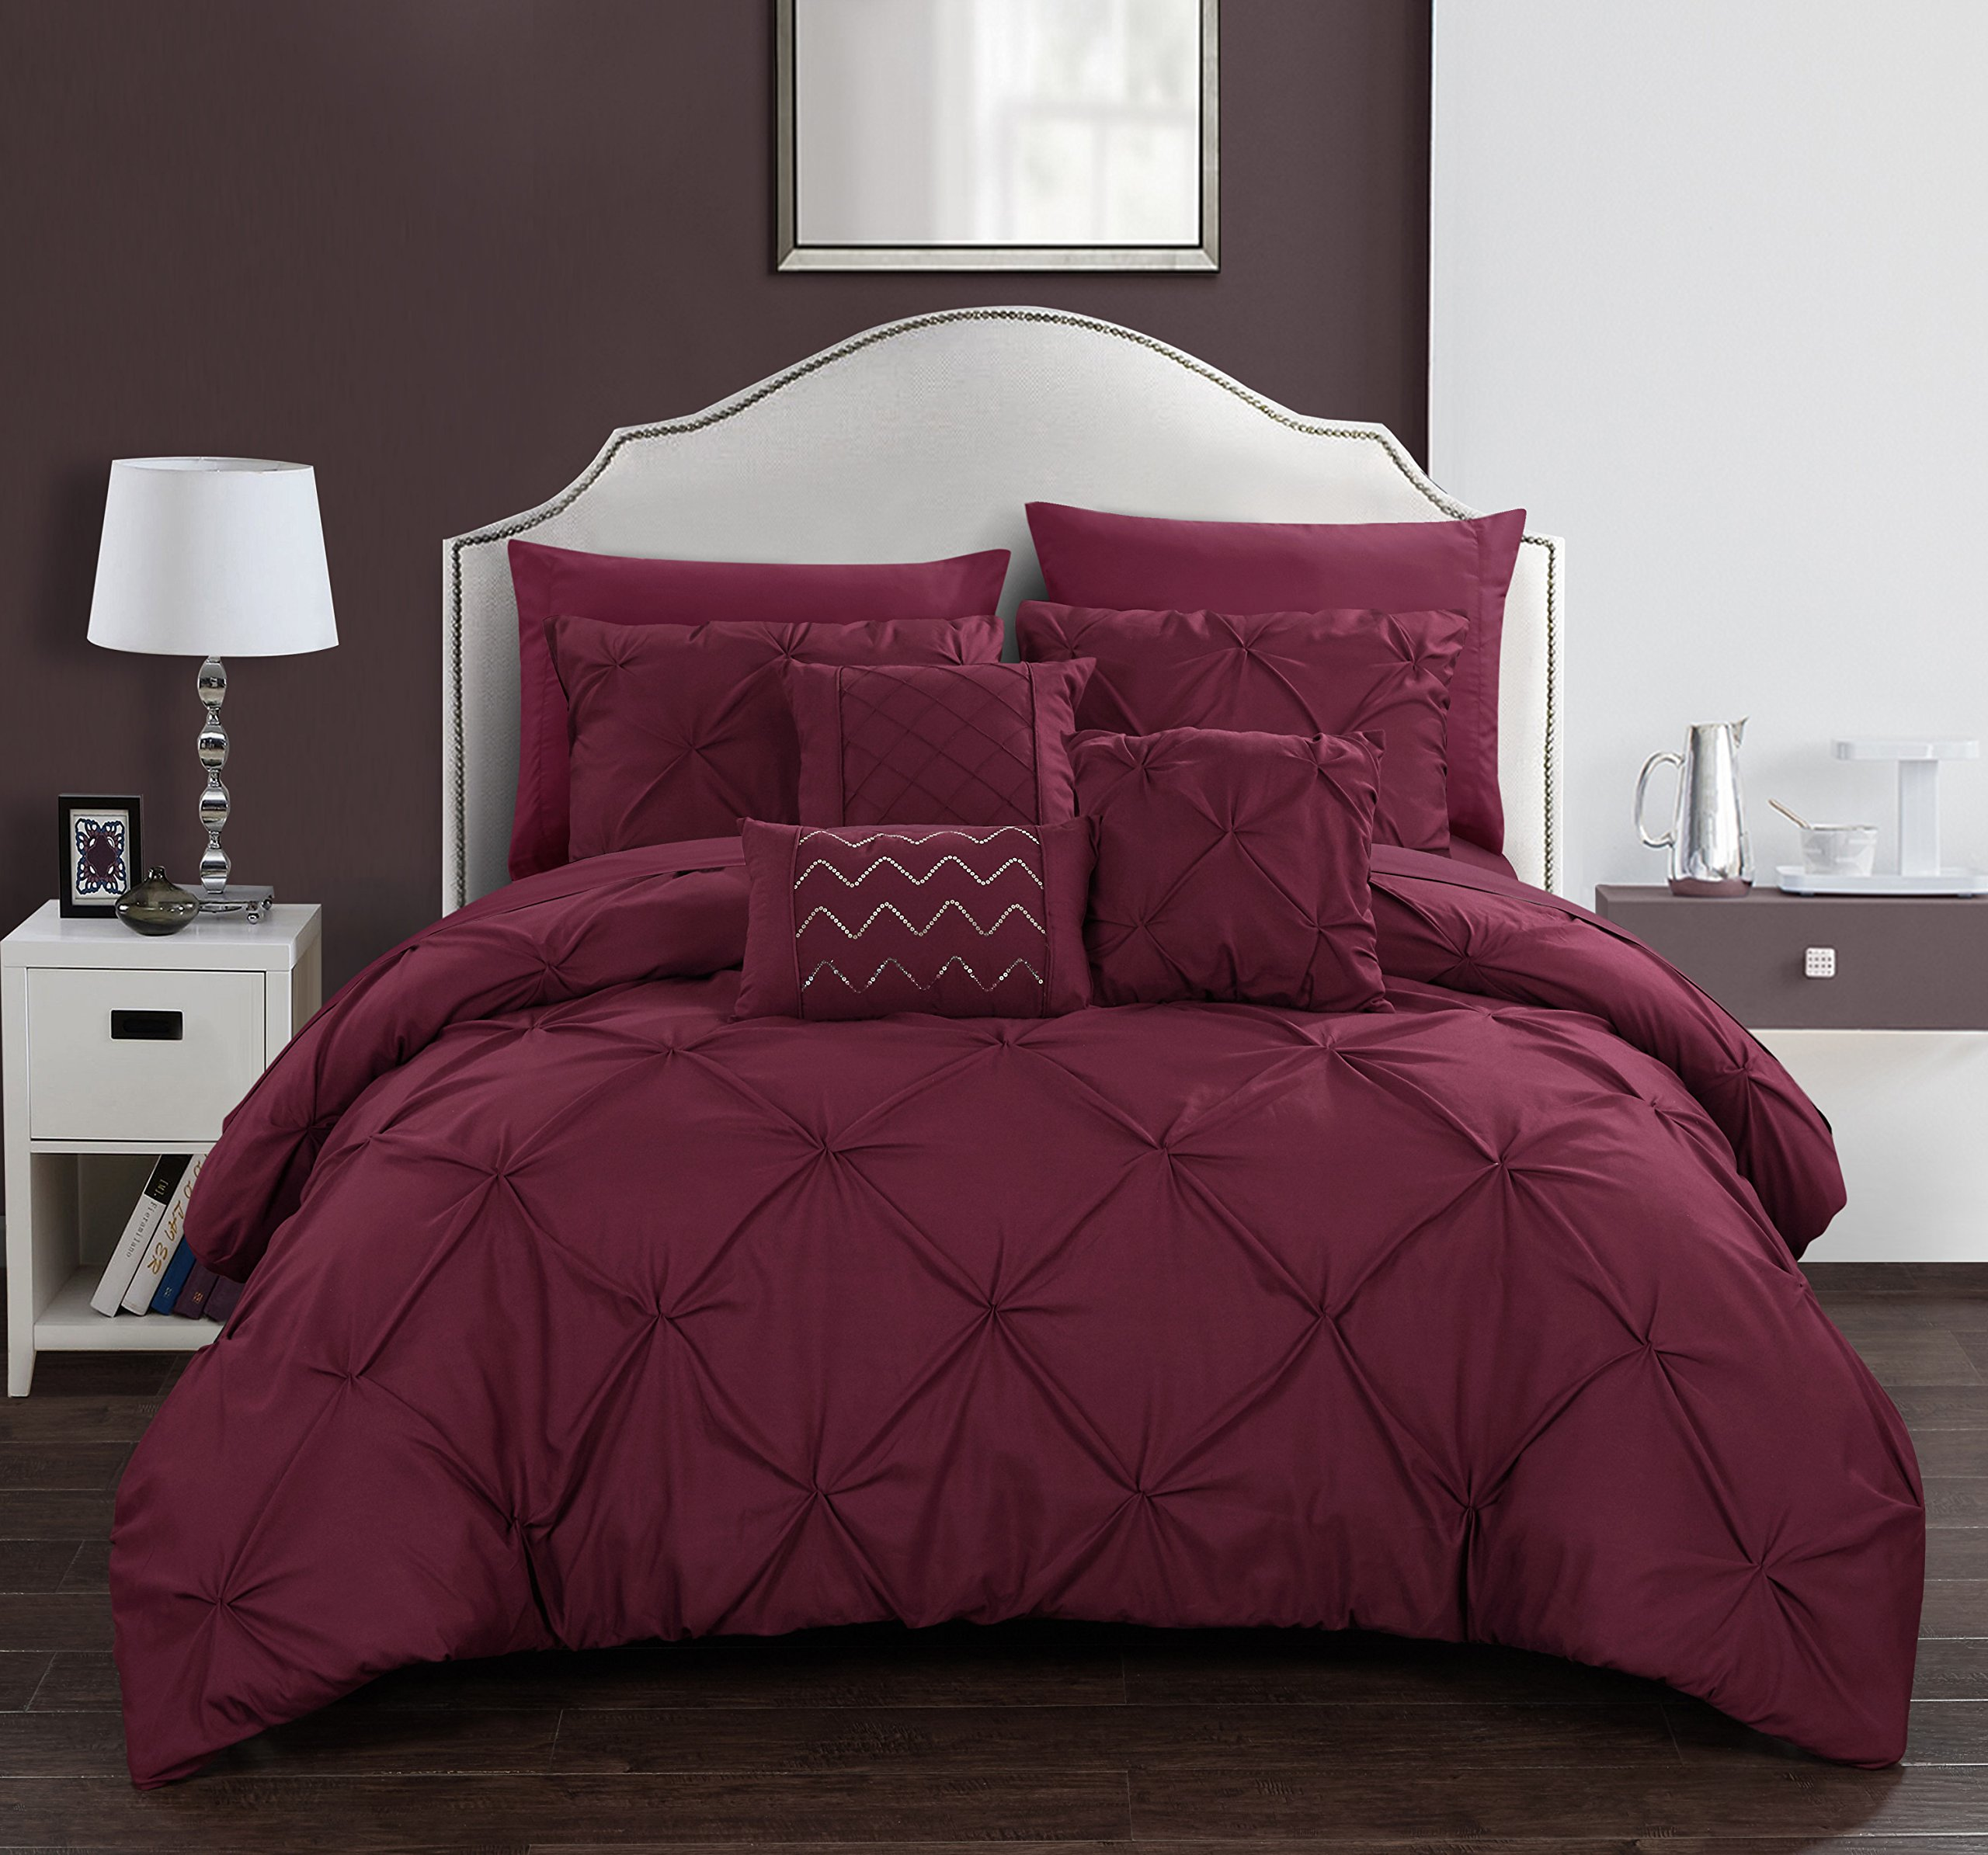 Chic Home Hannah 8 Piece Comforter Set Complete Bed In A Bag Pinch Pleated Ruffled Pintuck Bedding with Sheet Set And Decorative Pillows Shams Included, Twin Burgundy